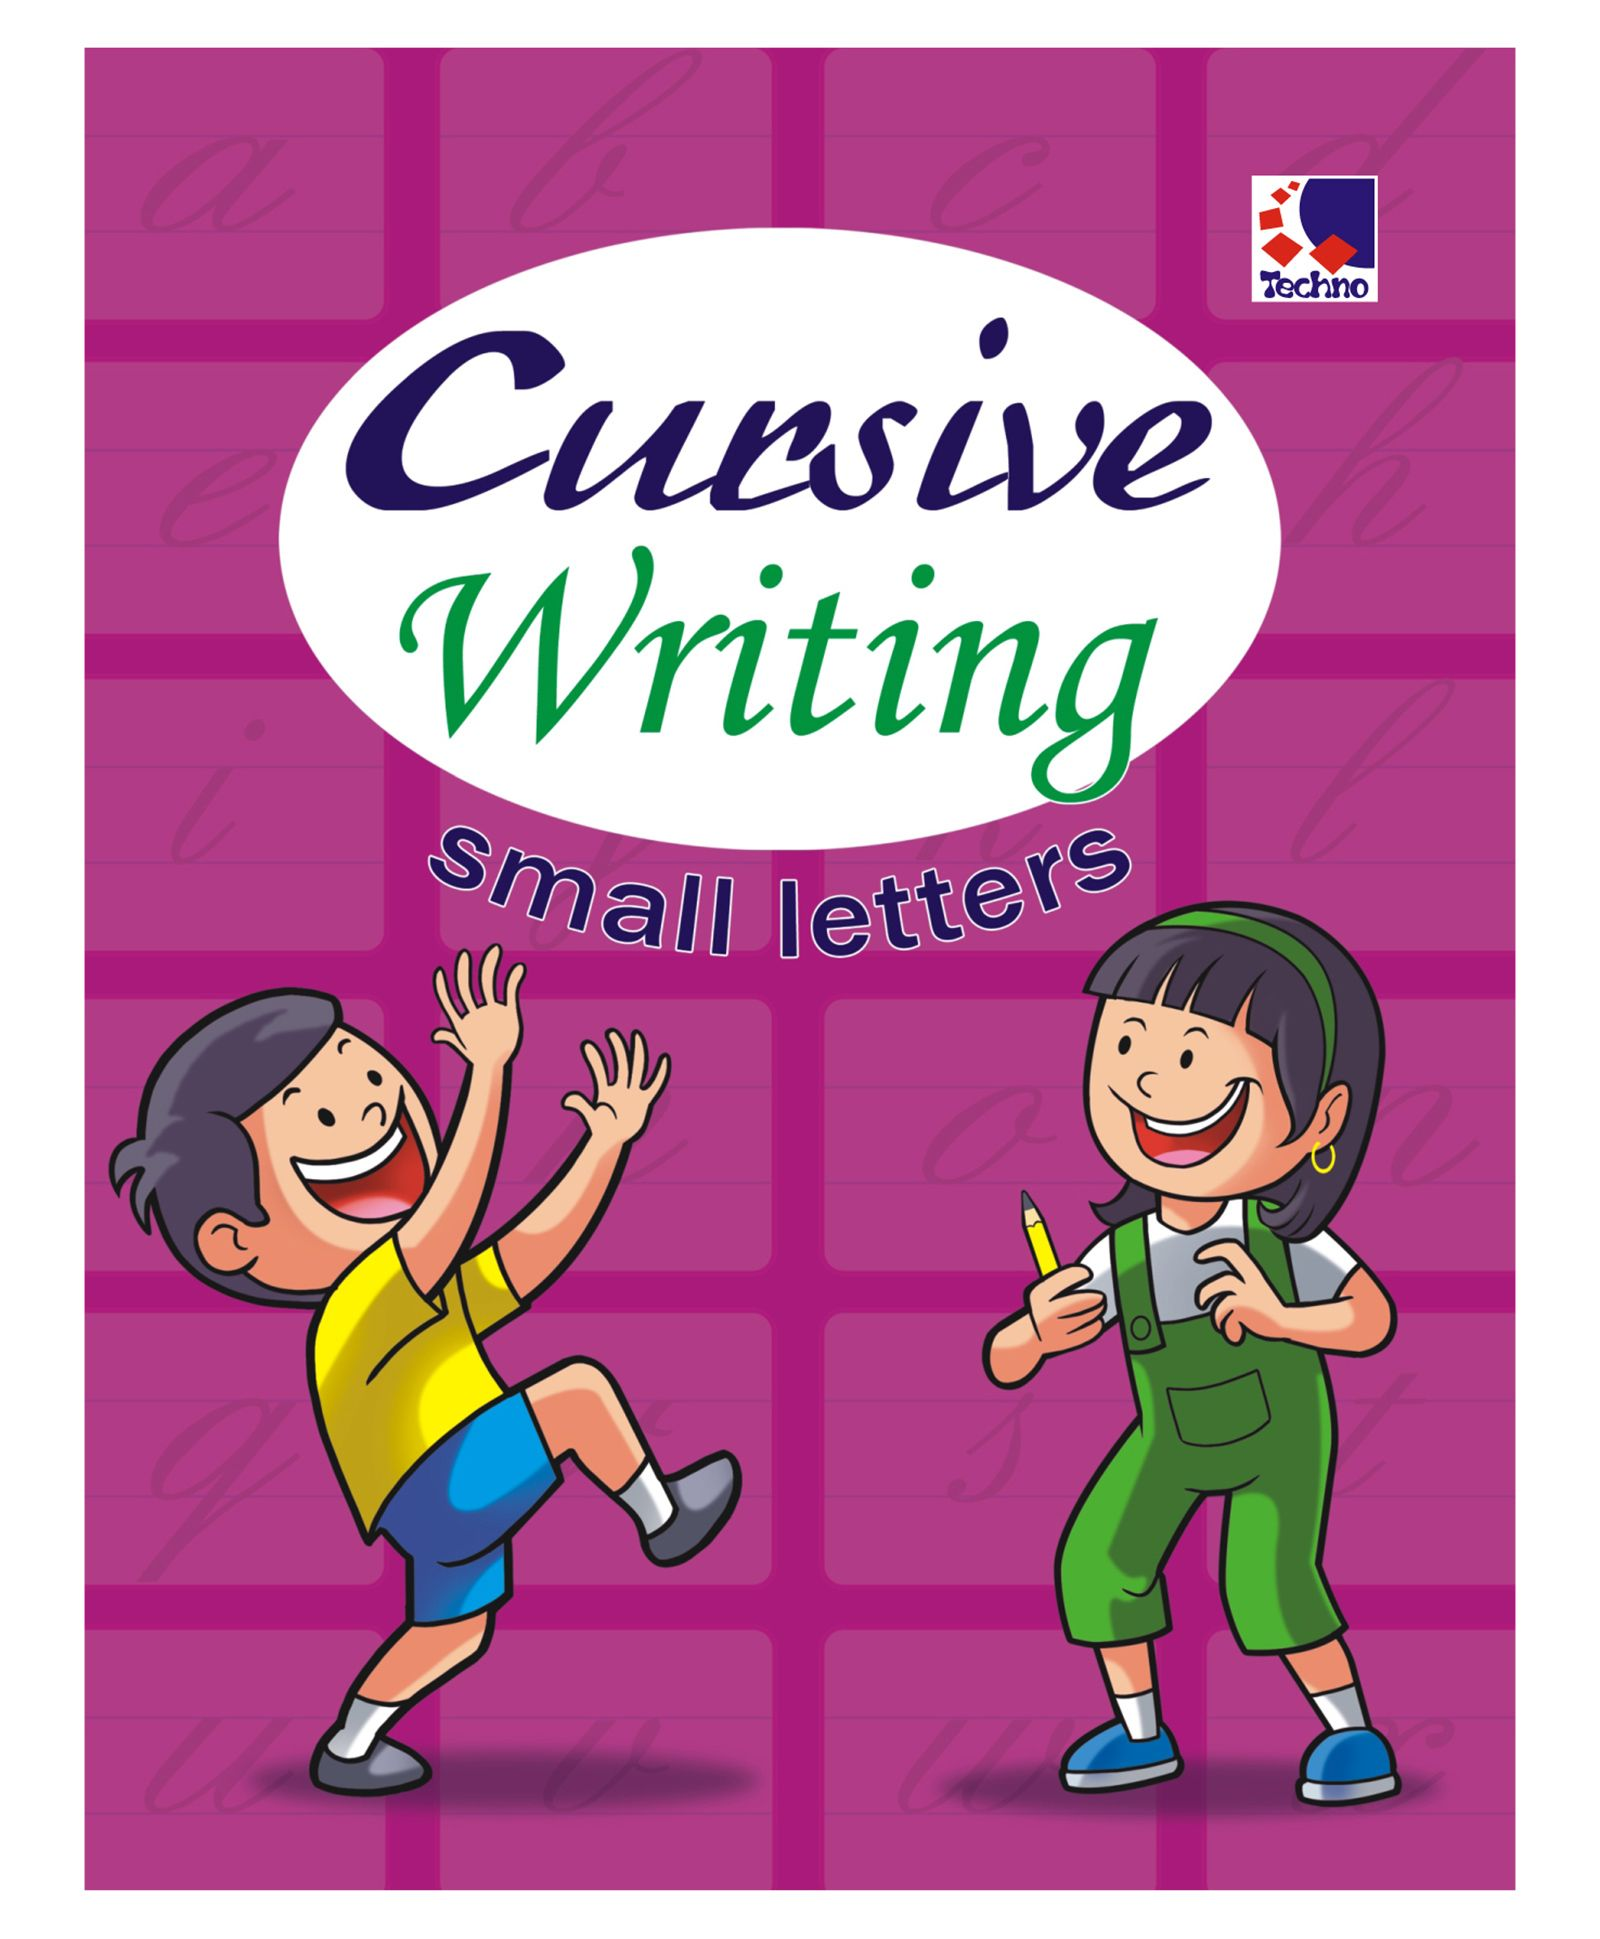 Cursive Writing Small Letters English Online in India, Buy at Best Price  from Firstcry com - 1636073